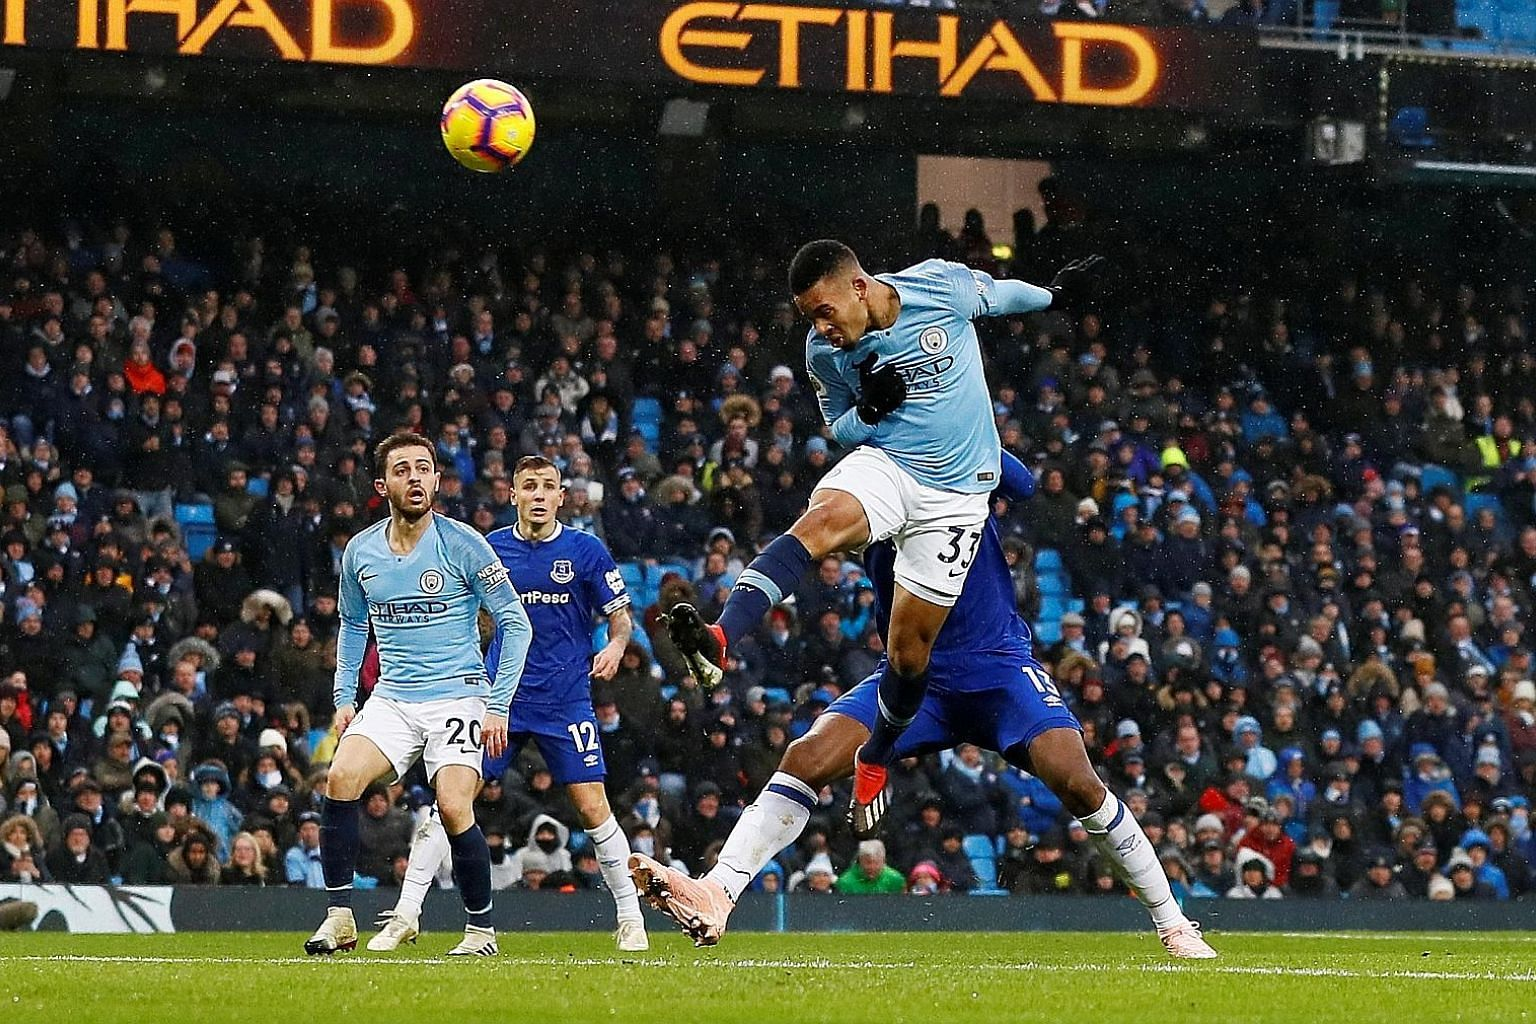 Manchester City's Gabriel Jesus powering a header past goalkeeper Jordan Pickford (not pictured) to make it 2-0 against Everton in the Premier League yesterday. The match ended 3-1 in favour of City, who also scored through Raheem Sterling.